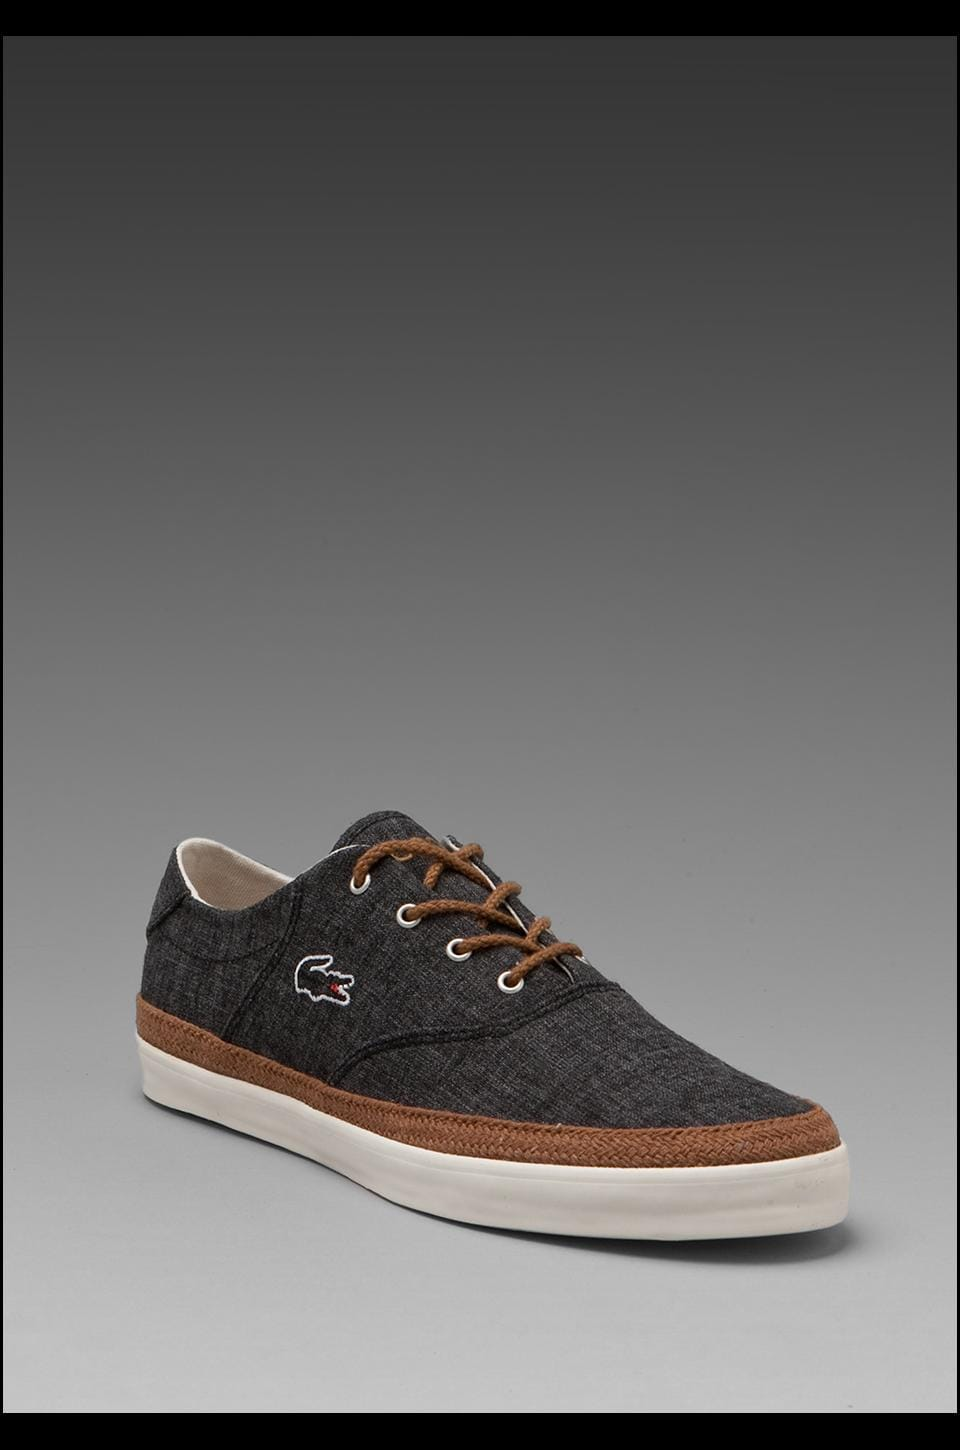 Lacoste Glendon Espa 2 in Black